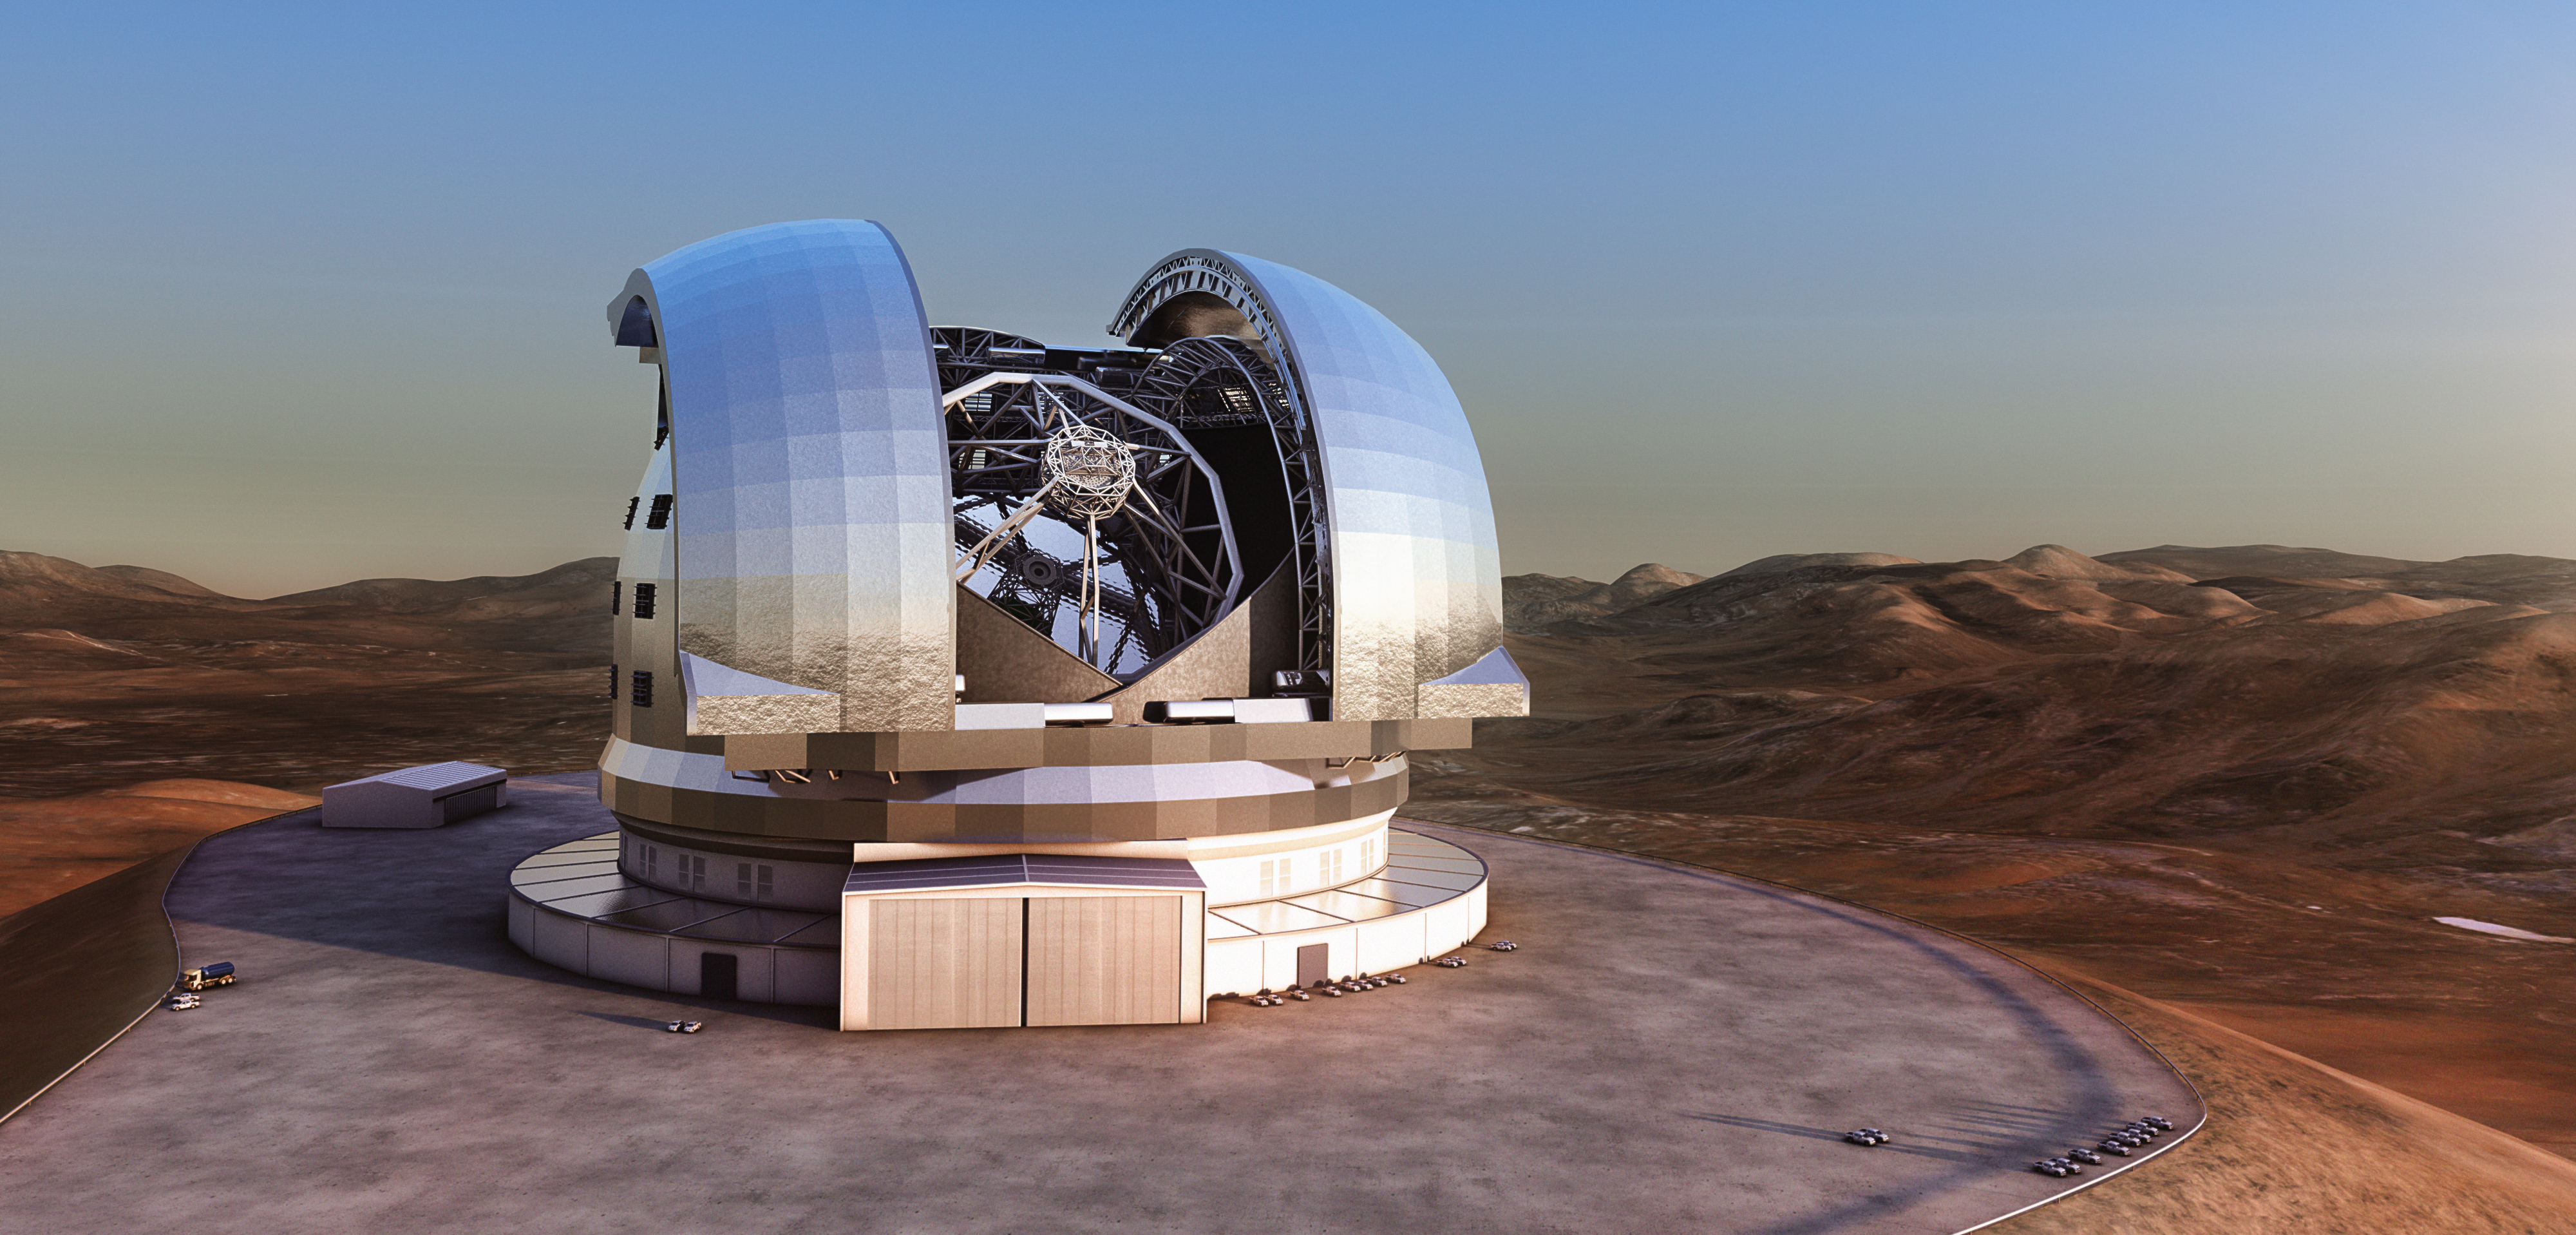 Oxford to build spectrograph for world's largest optical telescope